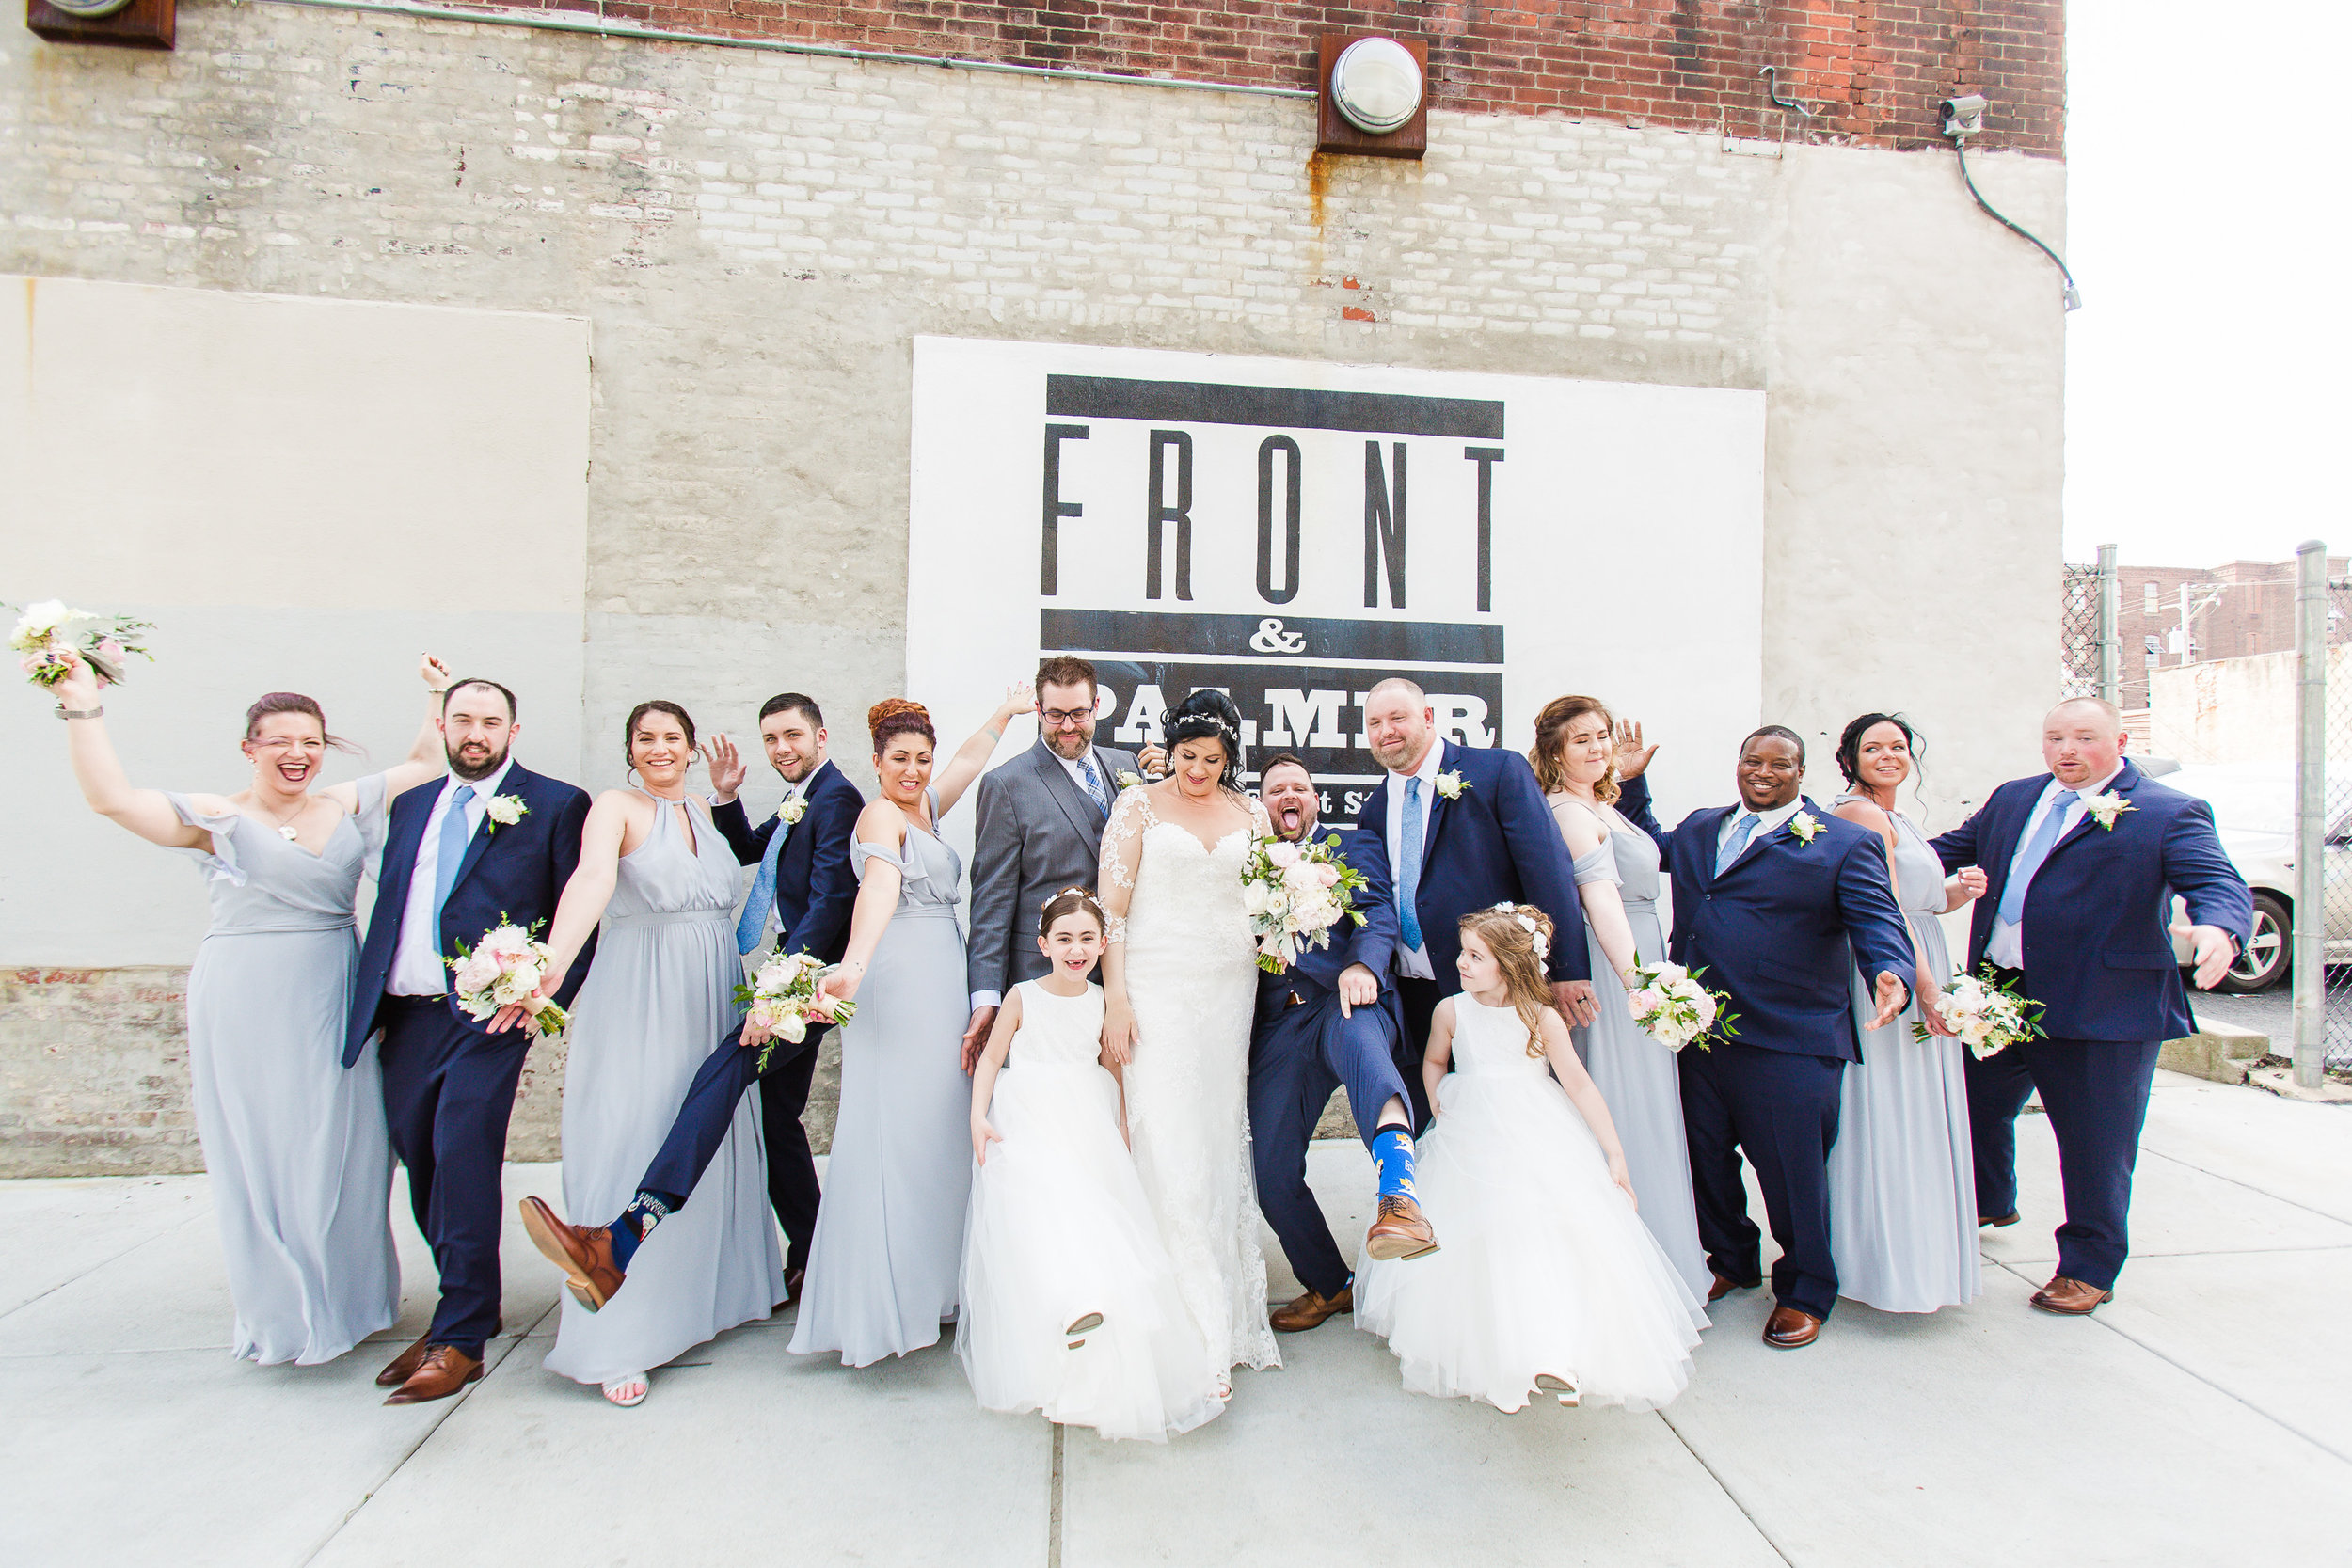 FRONT AND PALMER WEDDING - FISHTOWN PA -047.jpg